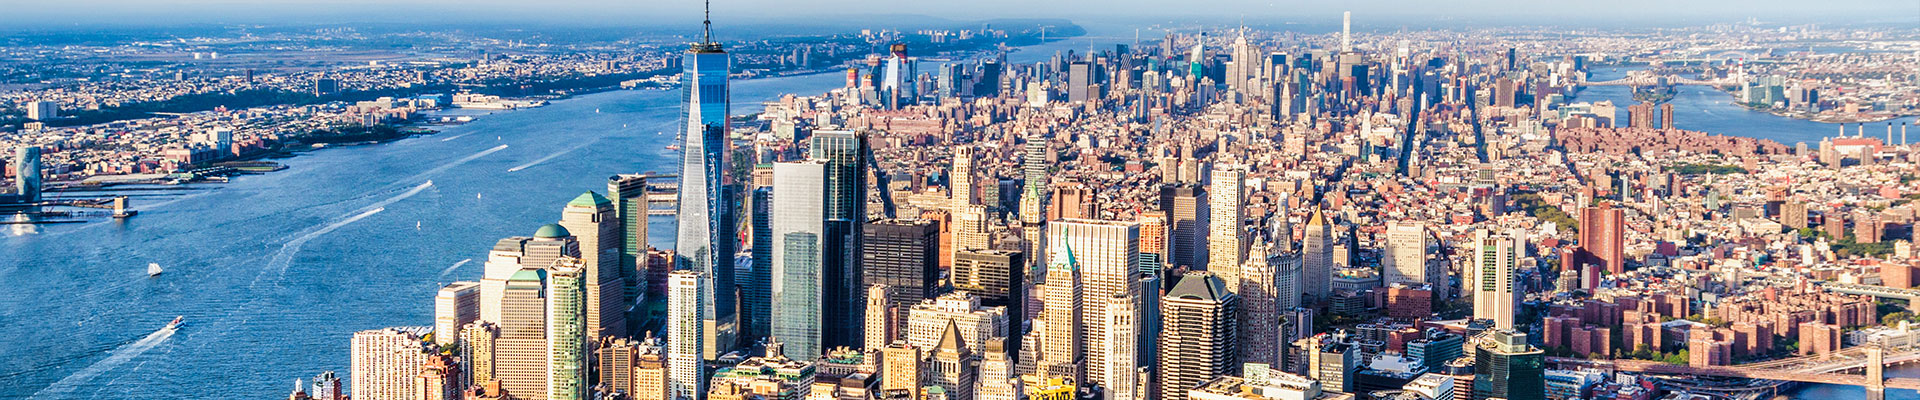 Fantasy RV Tours: 6 Day New York City Your Way (06UYWP-082921)